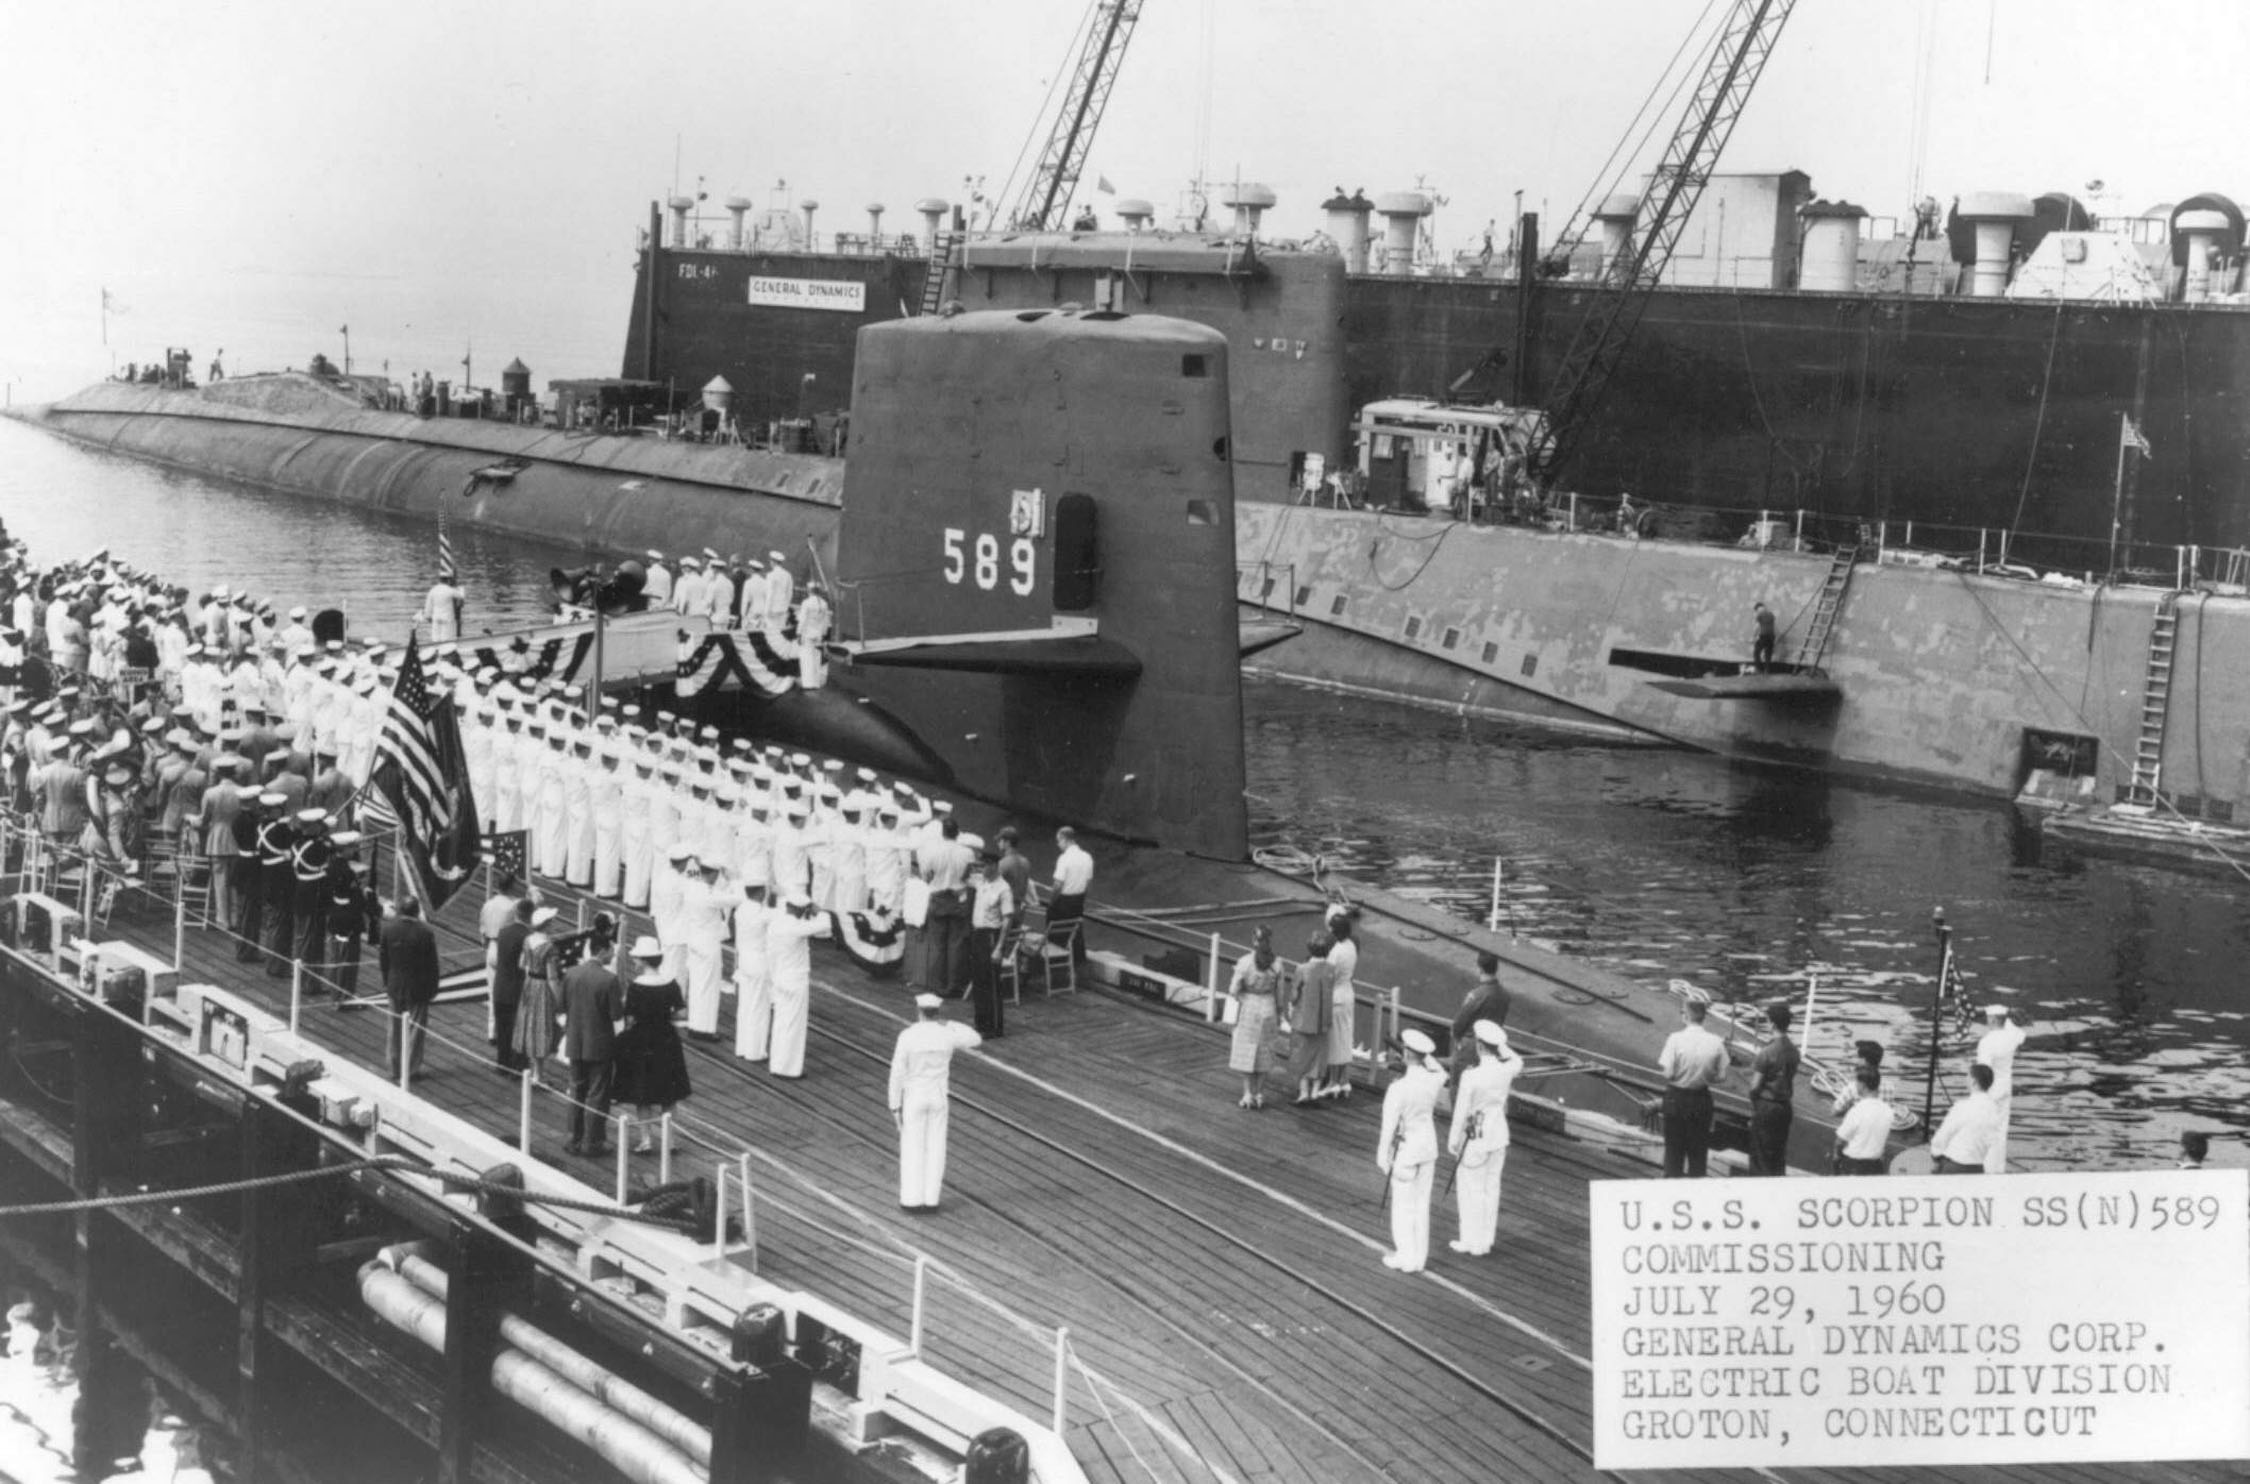 Commissioning of the U.S.S. Scorpion, 29 July 1960.  Photo # USN 1051824, courtesy of Scott Koen and ussnewyork.com.